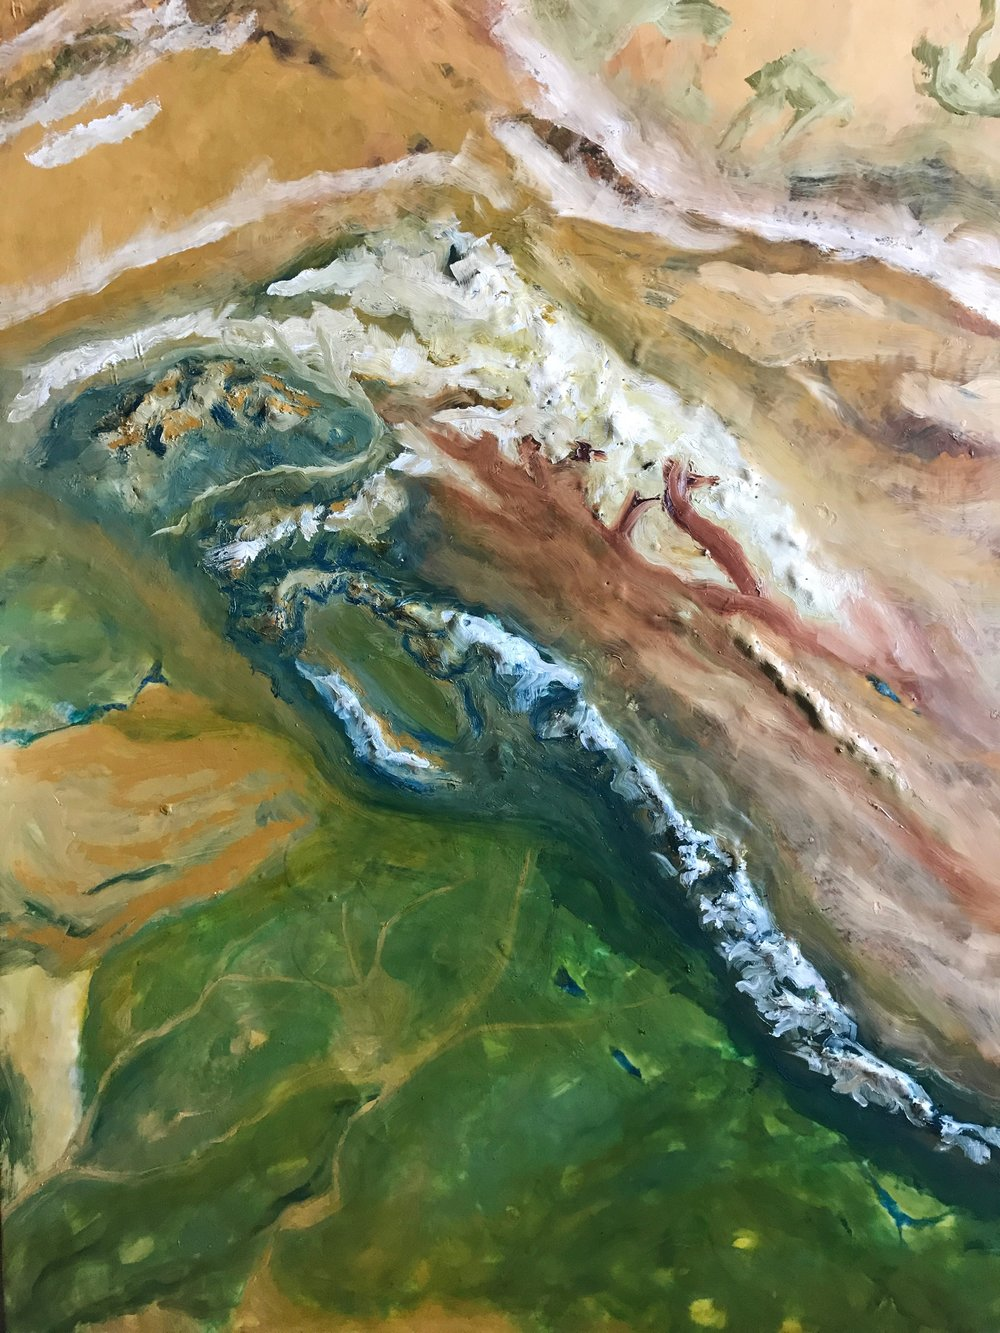 Kashmir and Jammu, 3x4', encaustic and oil. View it at The Hub University in Reno for the month of May.